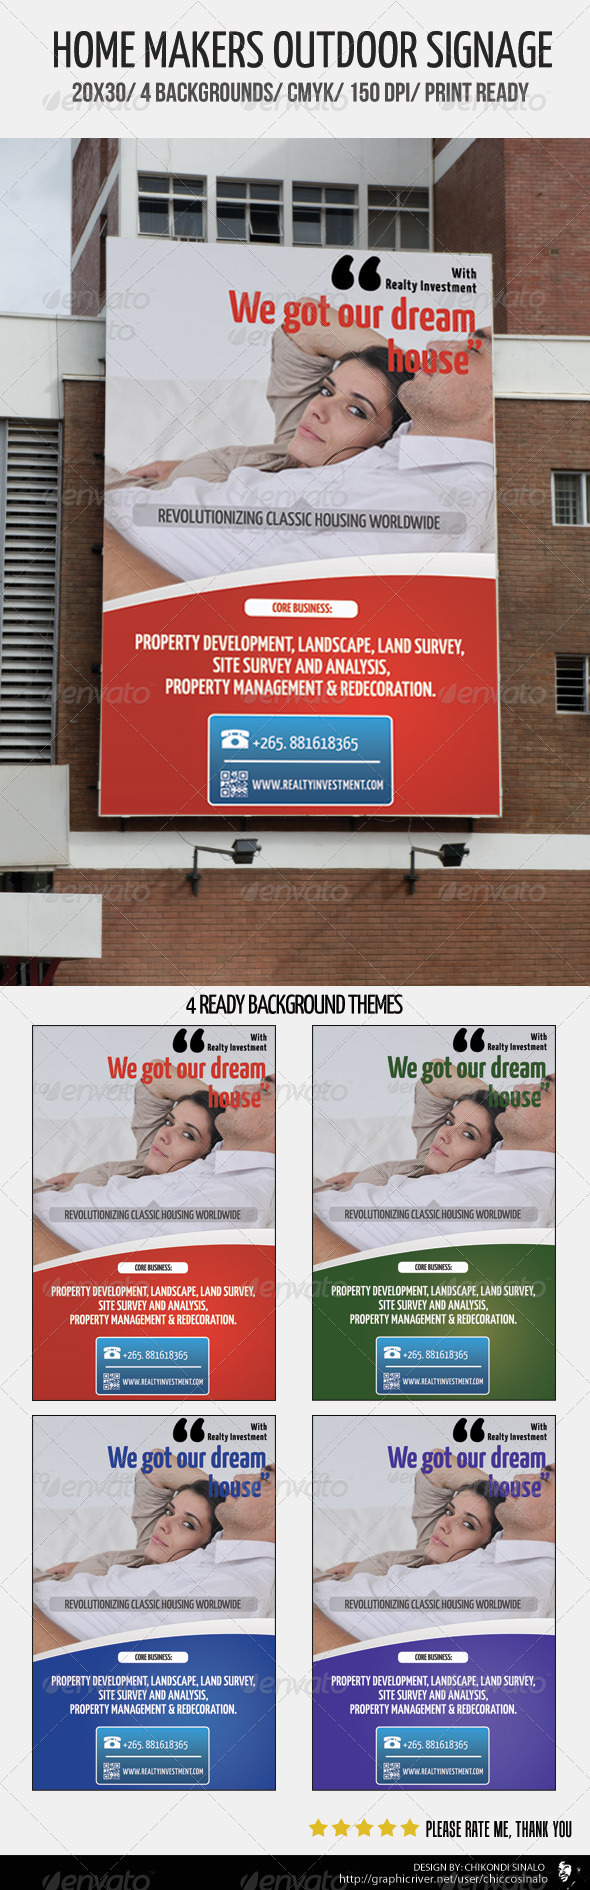 GraphicRiver Home Makers Outdoor Signage 2473544